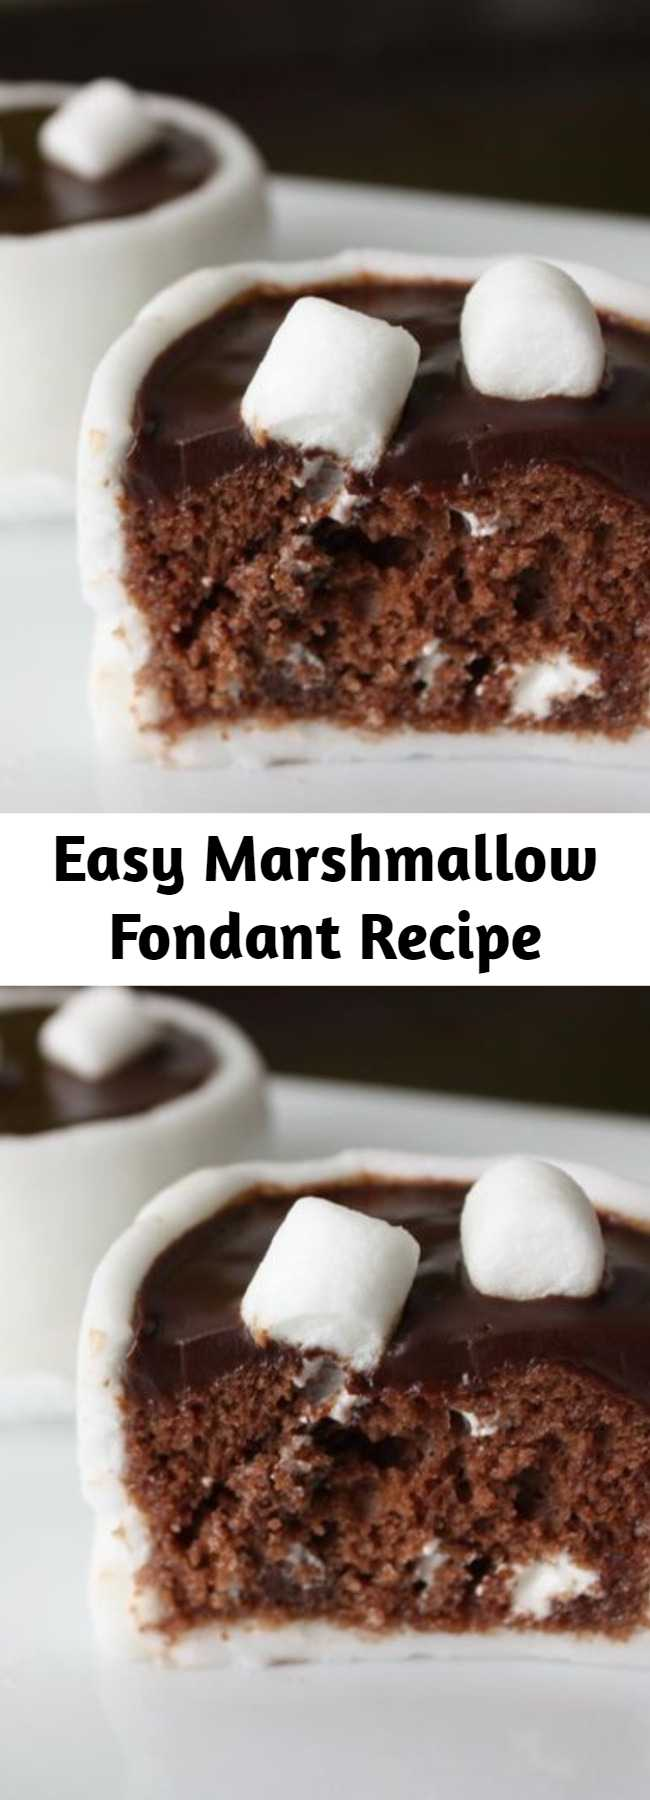 Easy Marshmallow Fondant Recipe - This is a very easy (and a little sticky at times) way to make a delicious fondant. It's great on cakes, cookies, or just for your little ones to play with! Leftovers will save in a tightly sealed container for a few weeks.